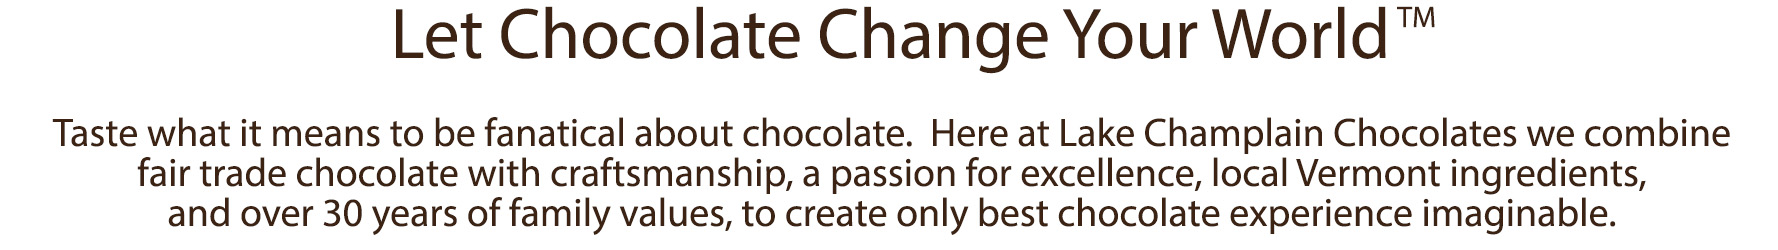 Let Chocolate Change Your World